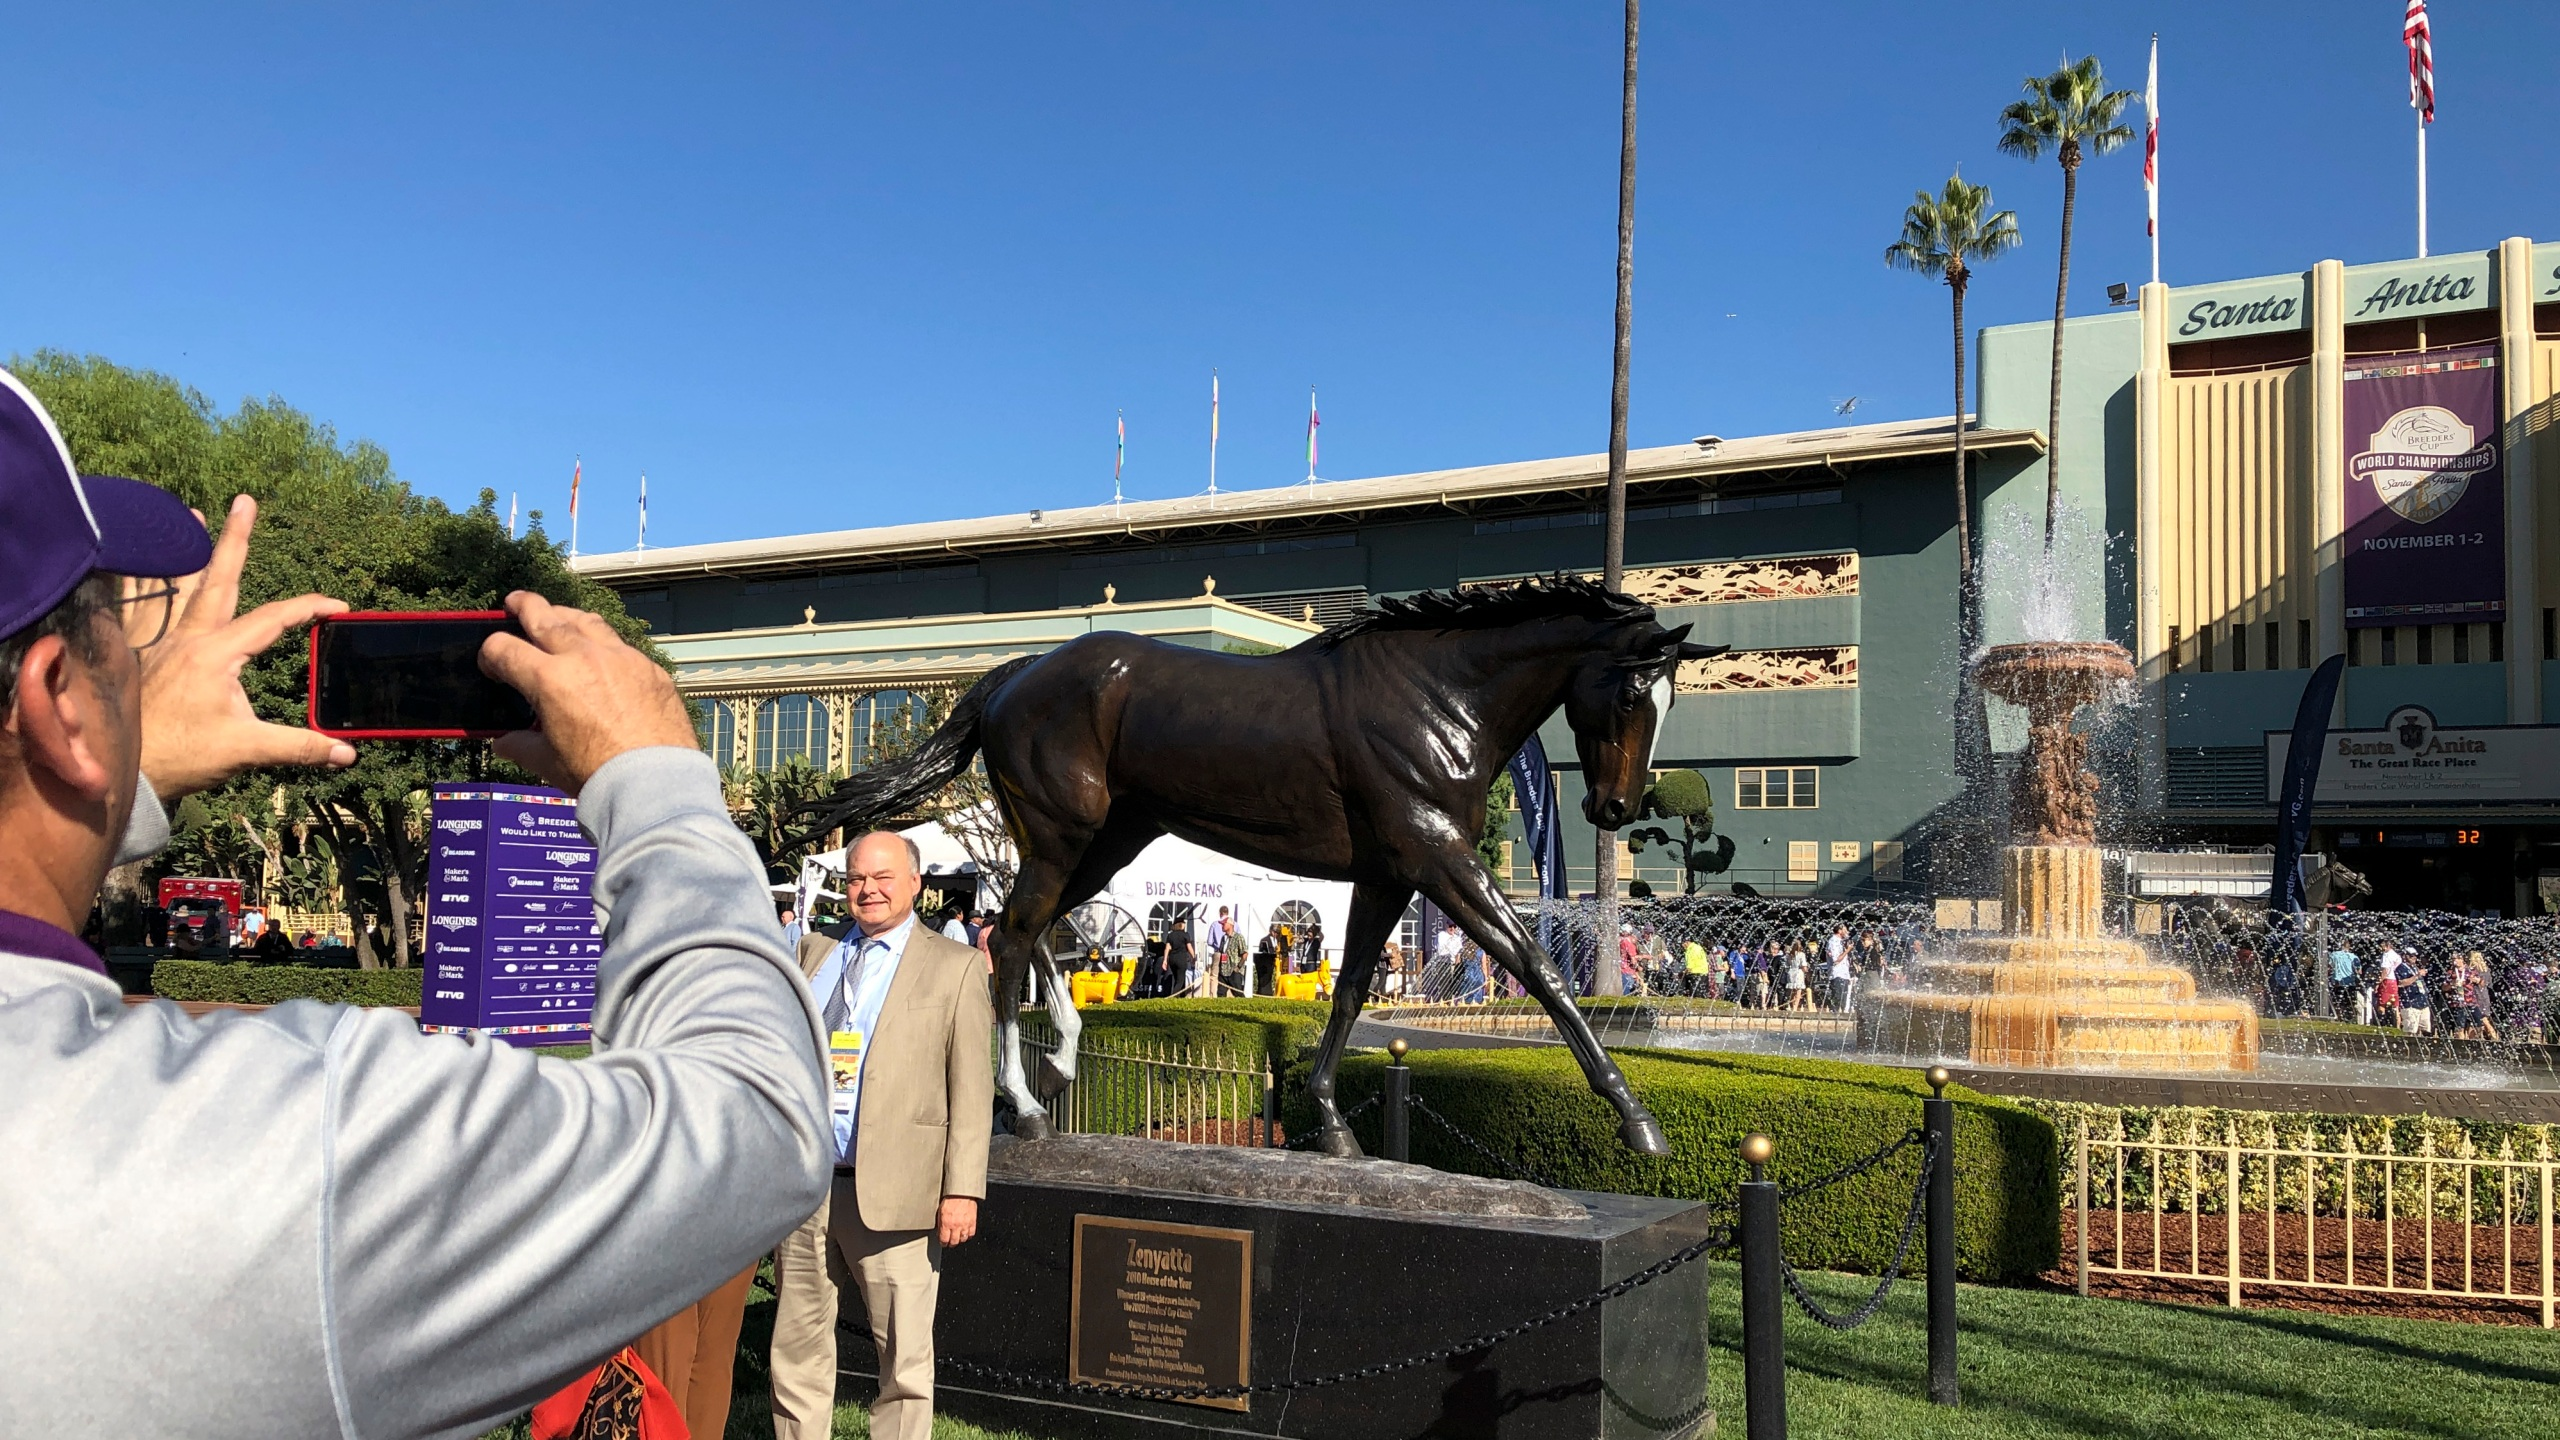 1 Man 1 Horse Video Link fans stream into santa anita for breeders' cup